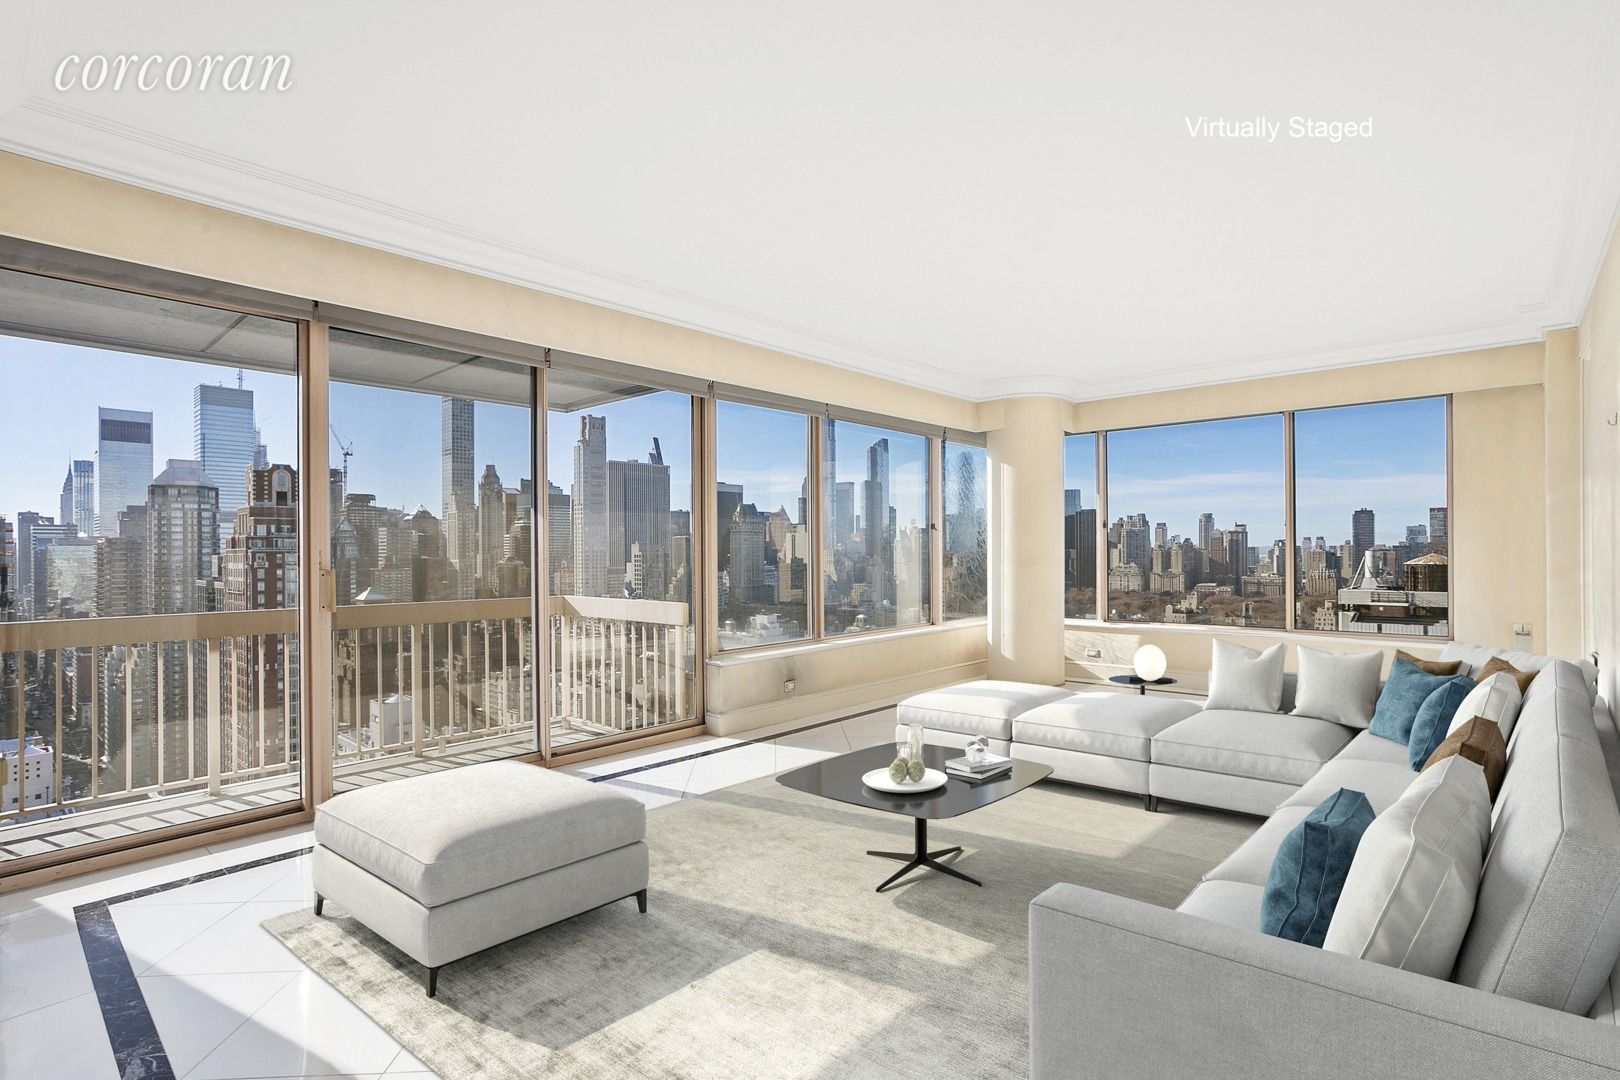 Apartment for sale at 200 East 69th Street, Apt 34C